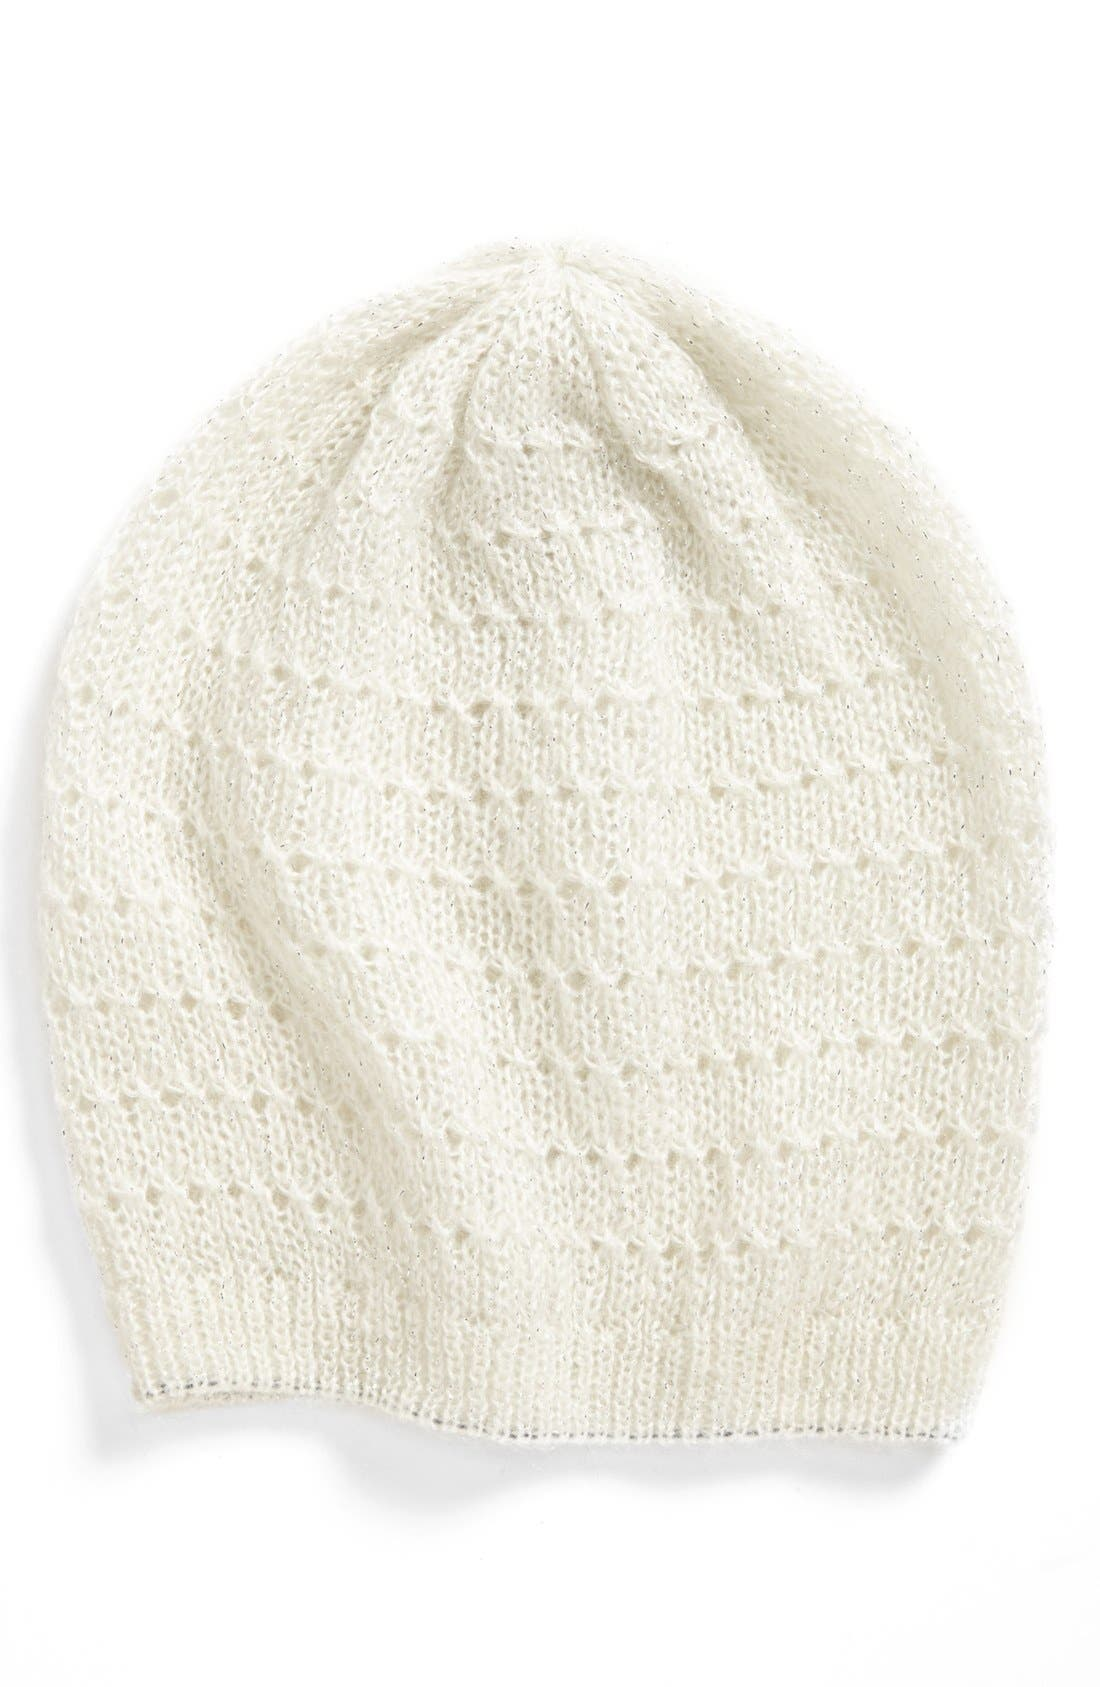 Alternate Image 1 Selected - Ruby & Bloom Cable Knit Beanie (Girls)